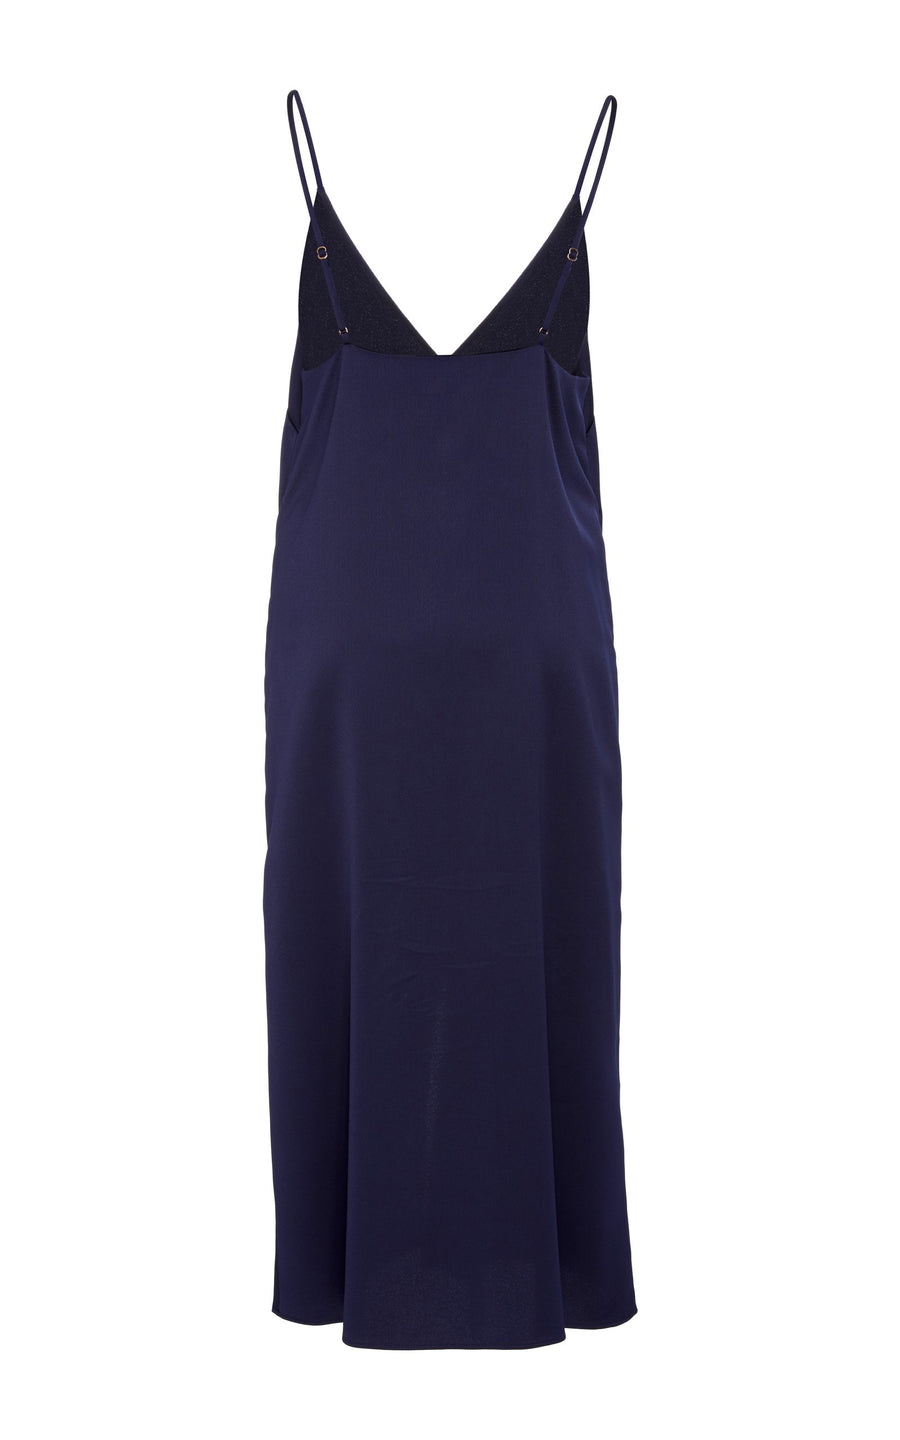 Tibi Celestia Satin Slip Dress